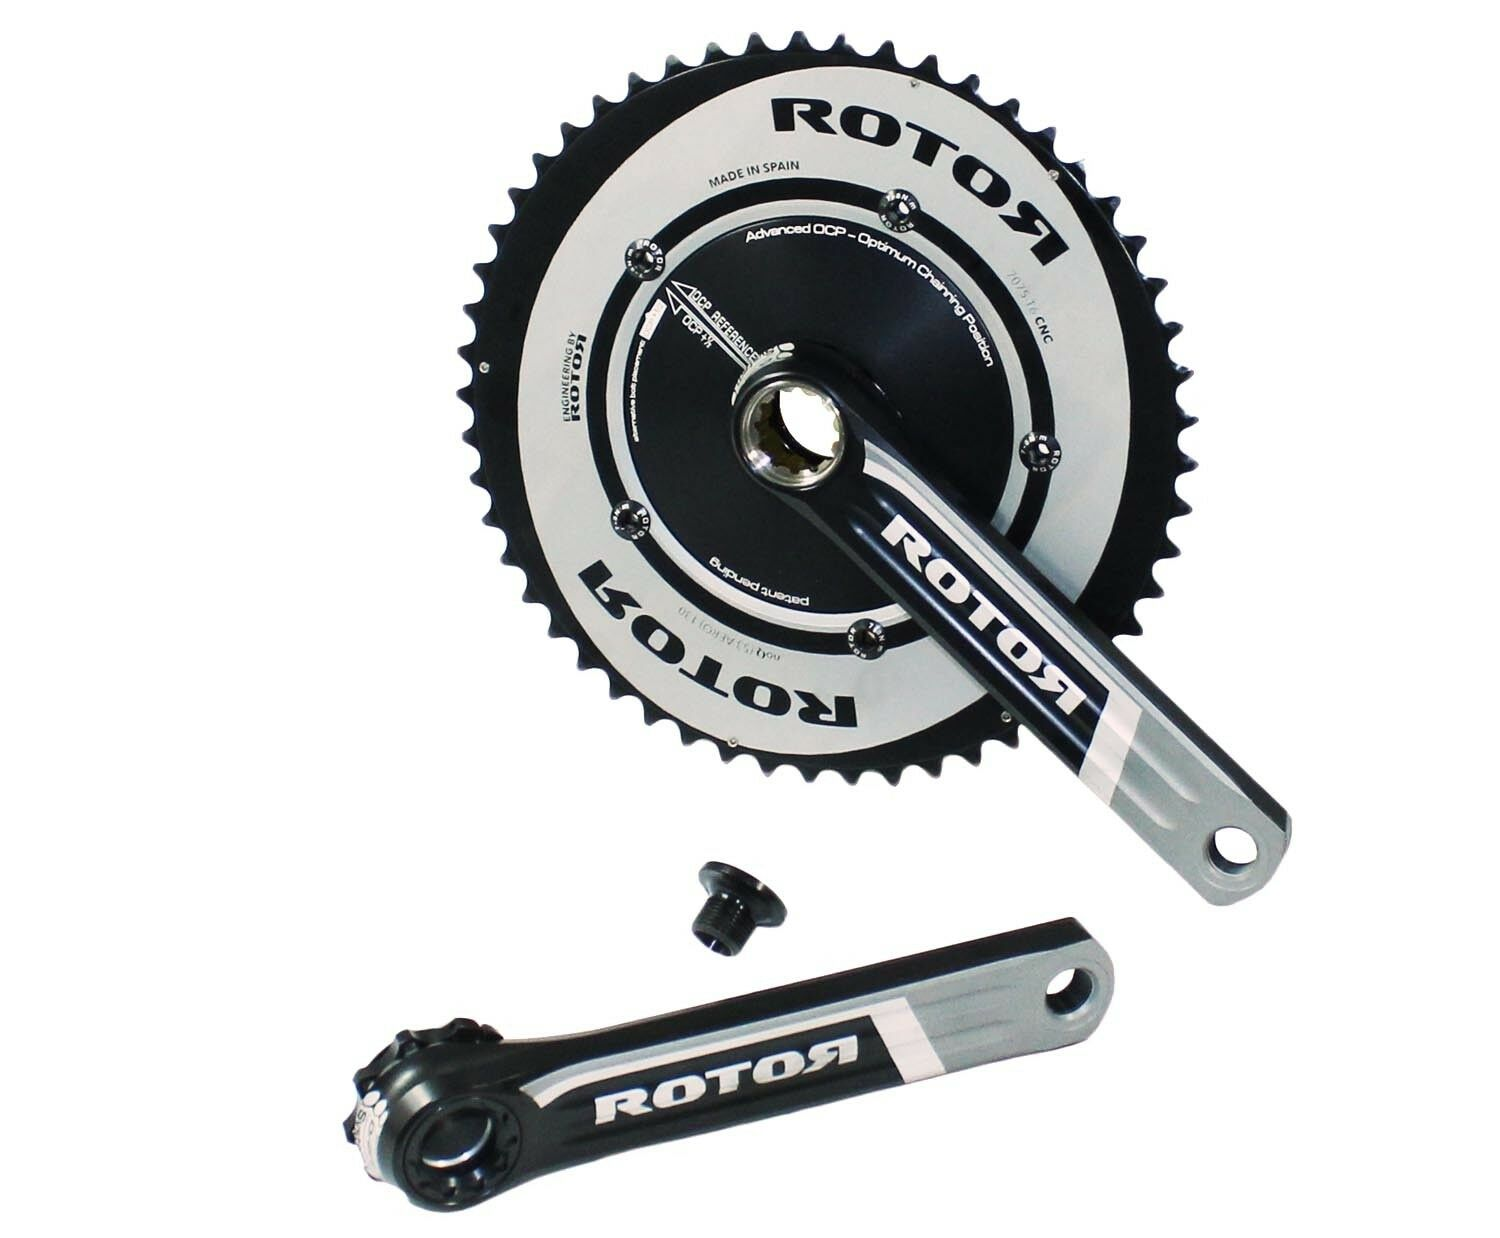 Rotor 3D 7075-T6 CNC Crank Crankset 53 39 Teeth Ø165mm Sprocket